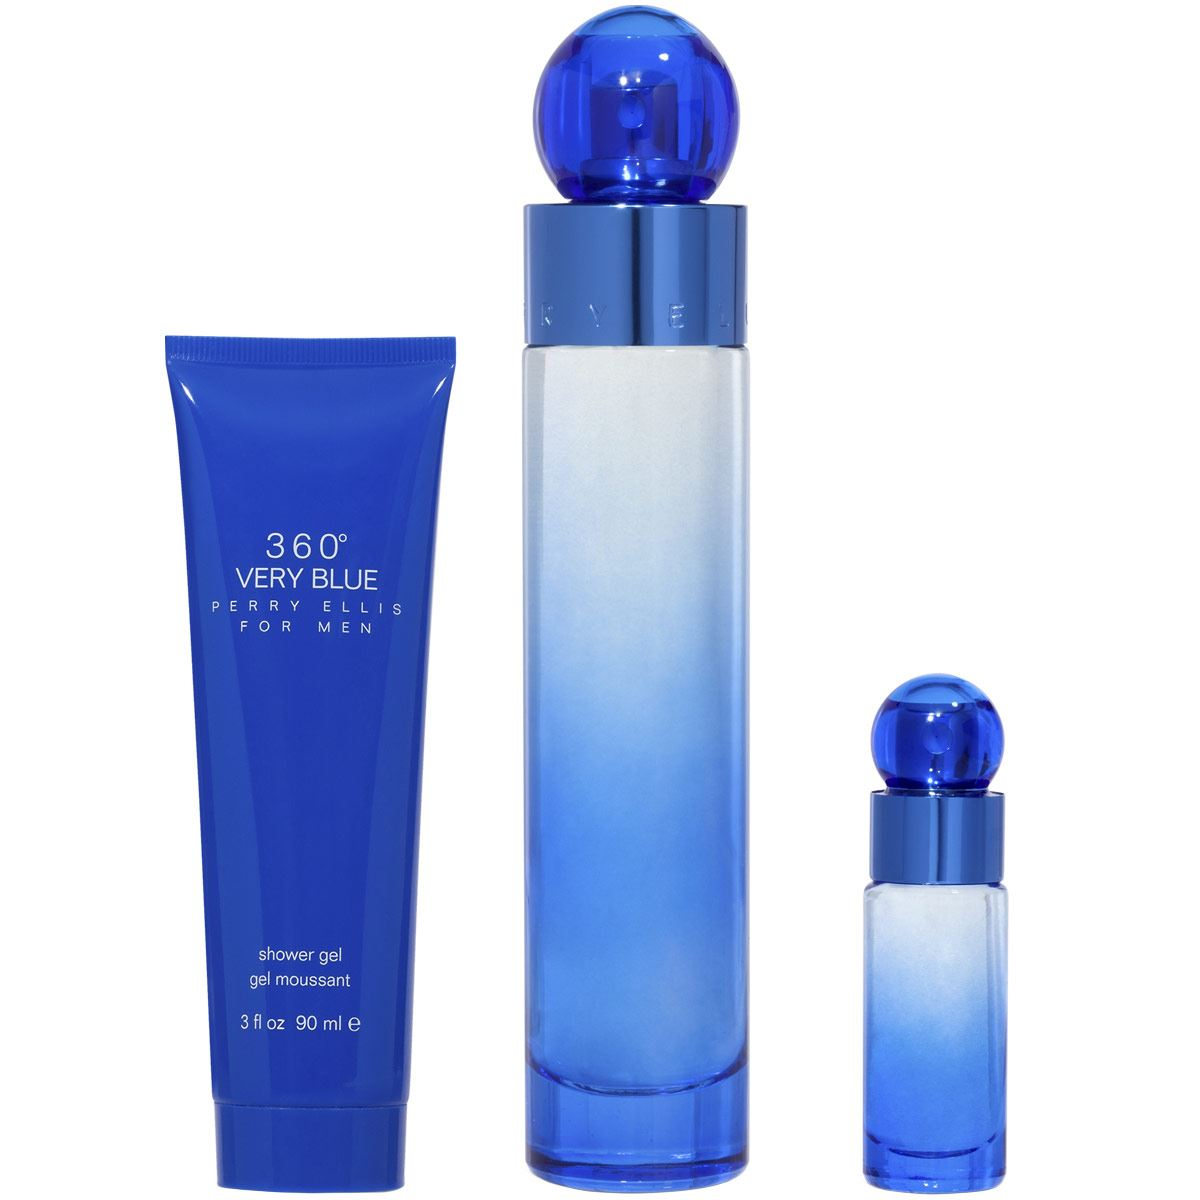 Set para Caballero 360° Very Blue Perry Ellis